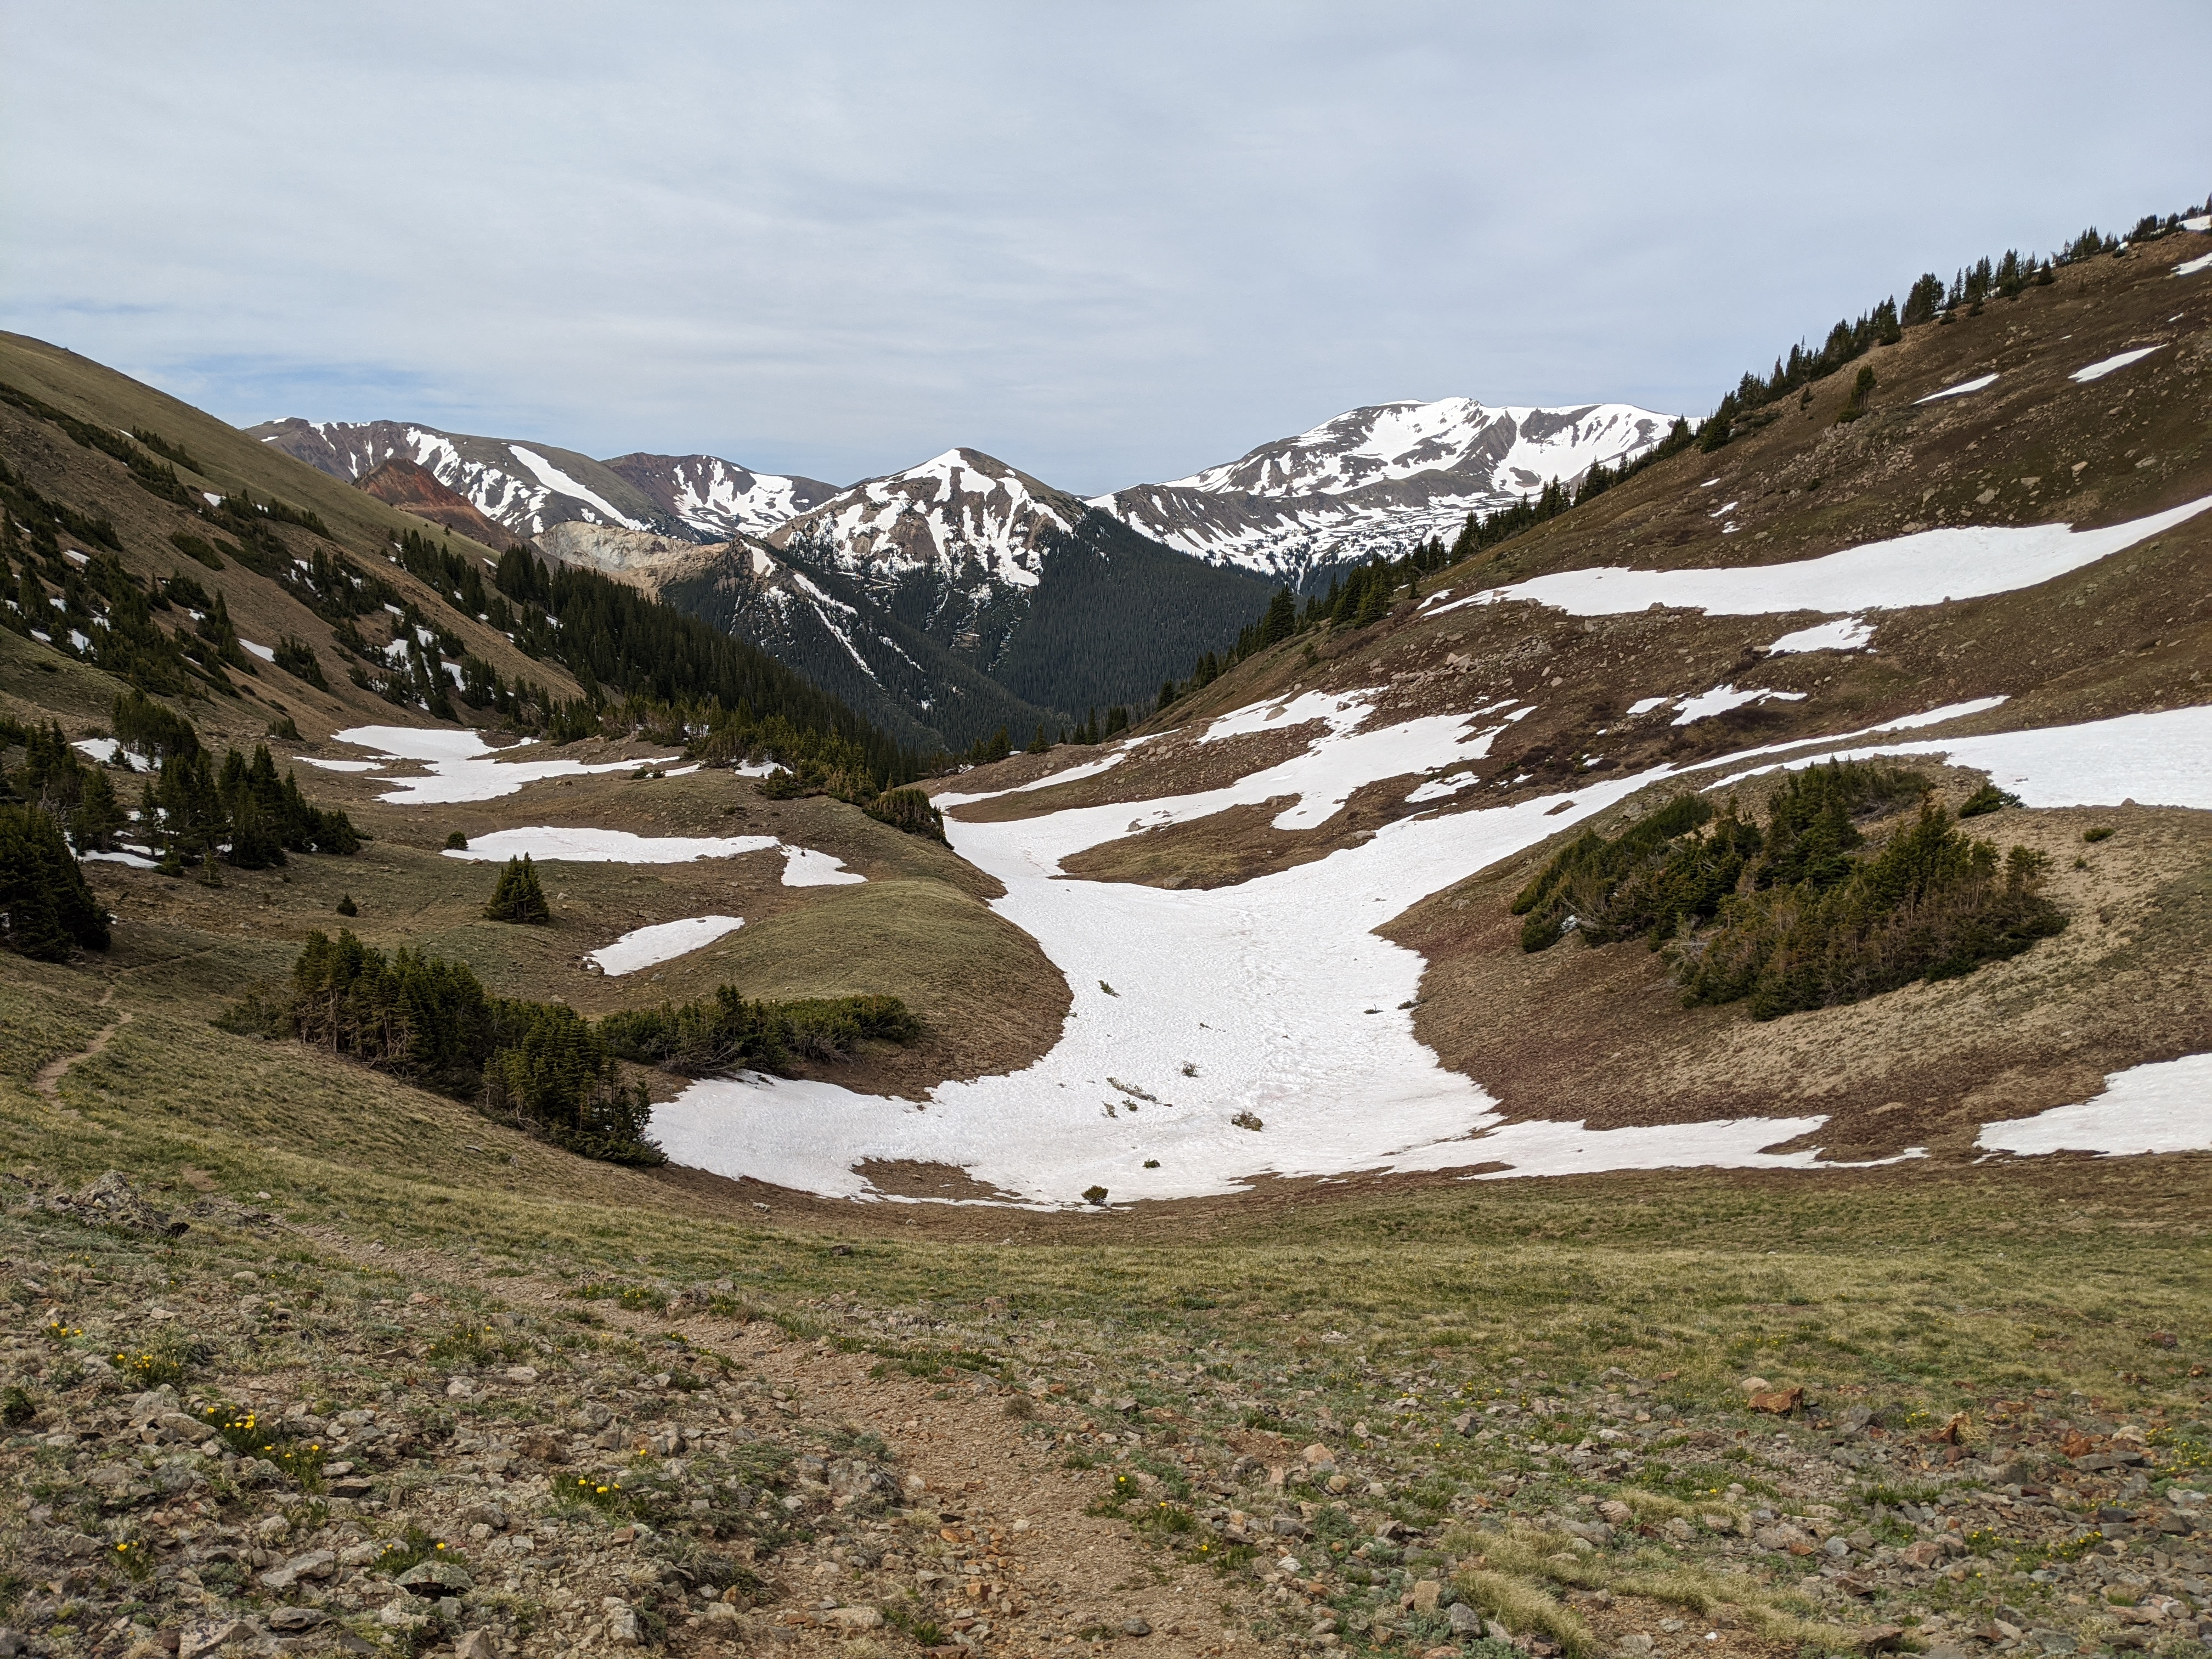 Vasquez Pass, at the very edge of the Vasquez Peak Wilderness.